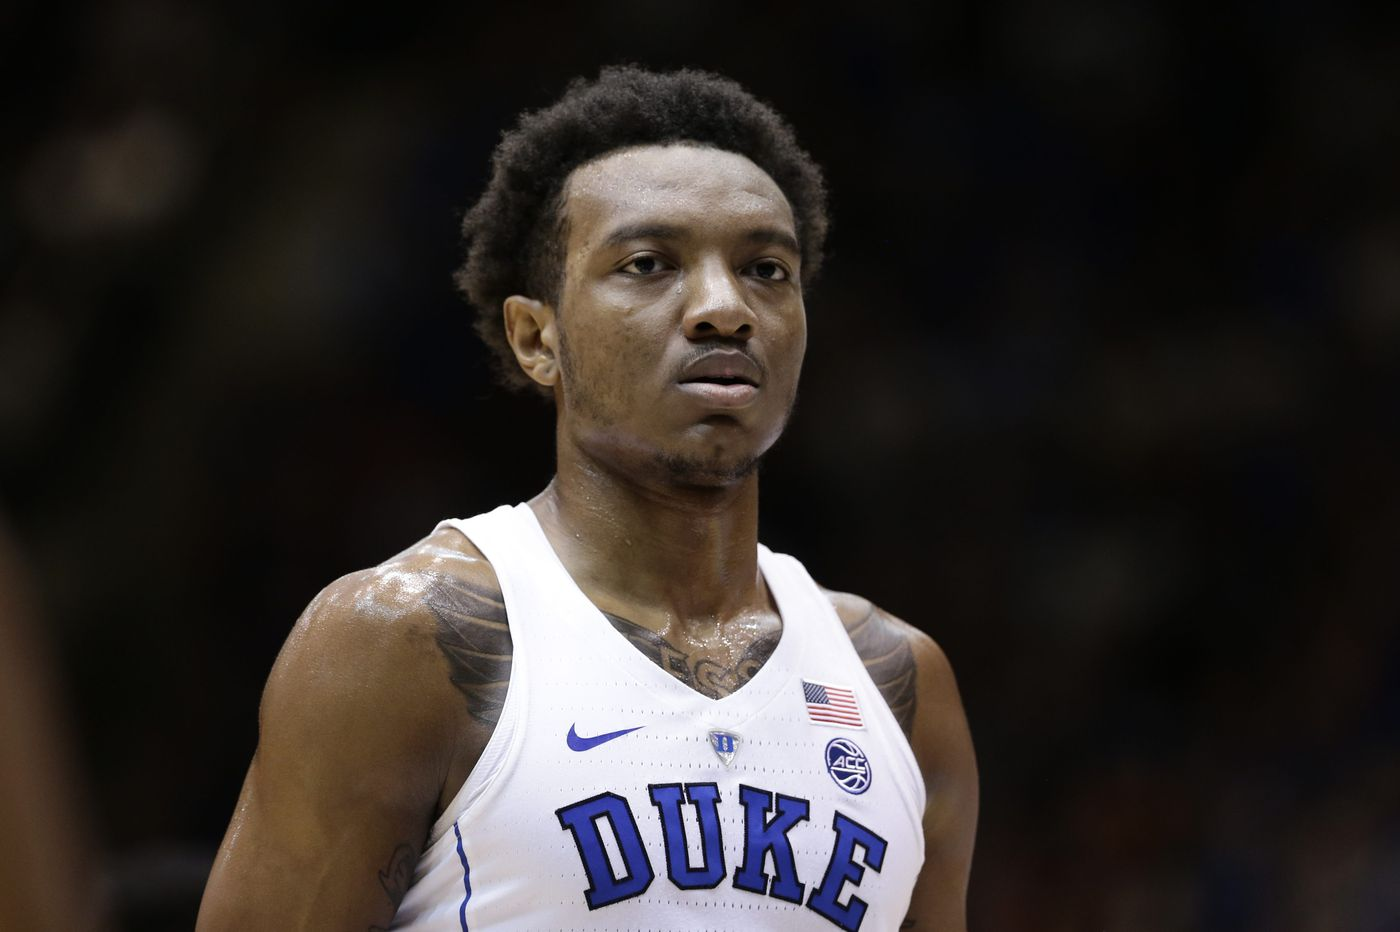 NBA mock draft: If he's there, Wendell Carter is an option for Sixers at No. 10 | David Murphy